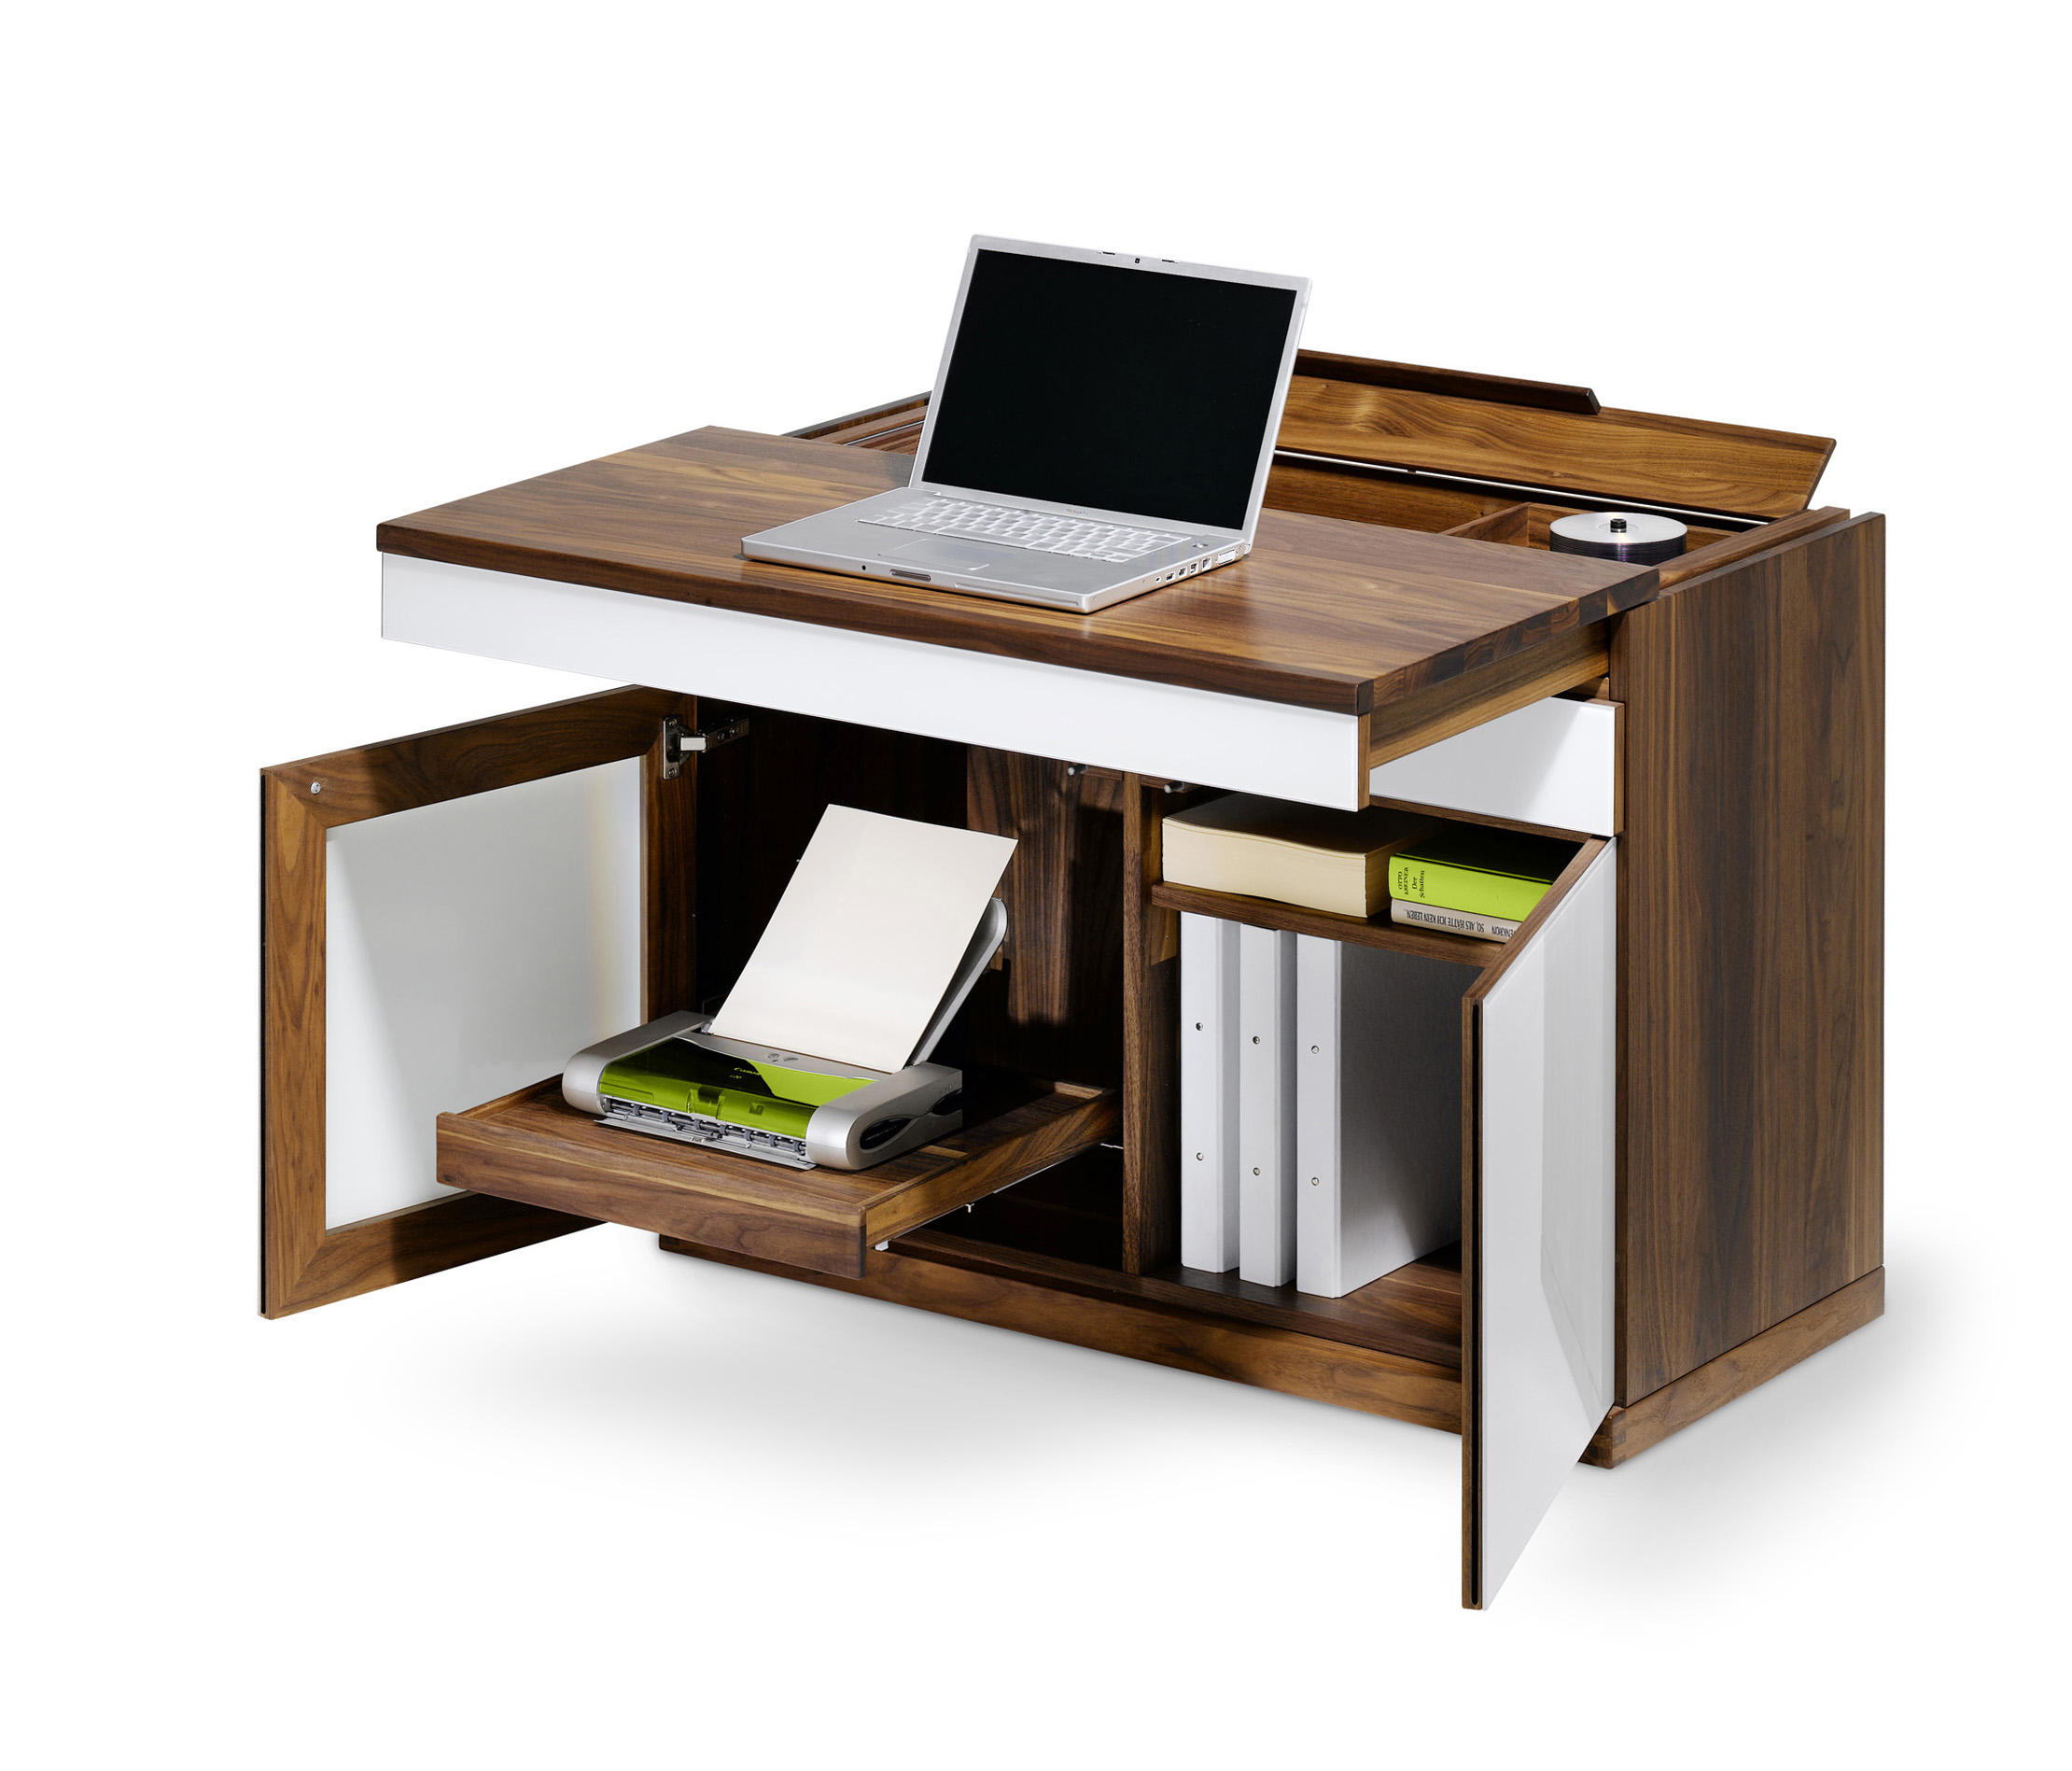 Team 7 Cubus Cubus Writing Desk Desks From Team 7 Architonic